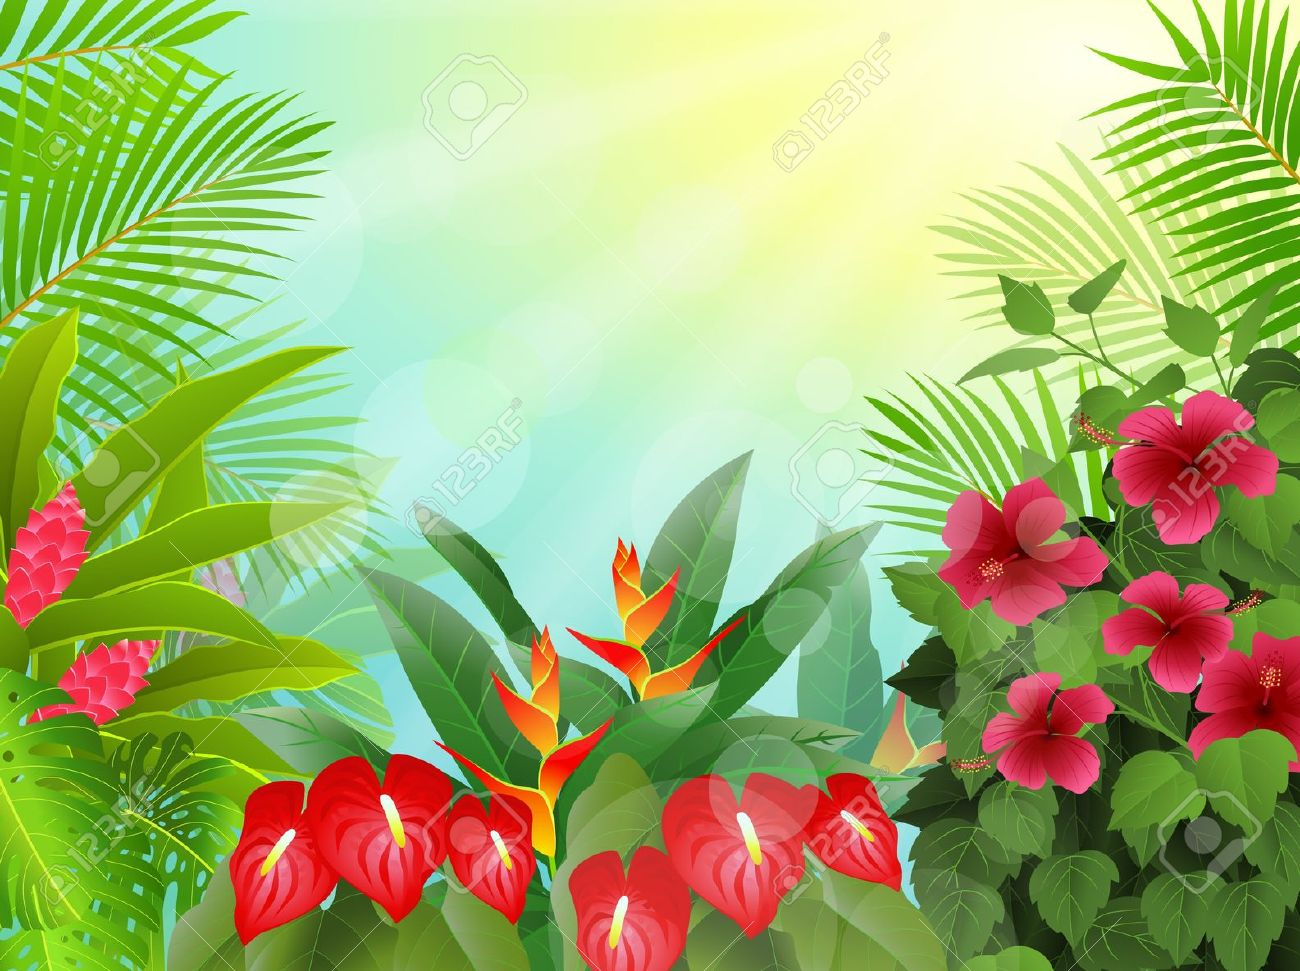 14,344 Tropical Rainforest Stock Illustrations, Cliparts And.